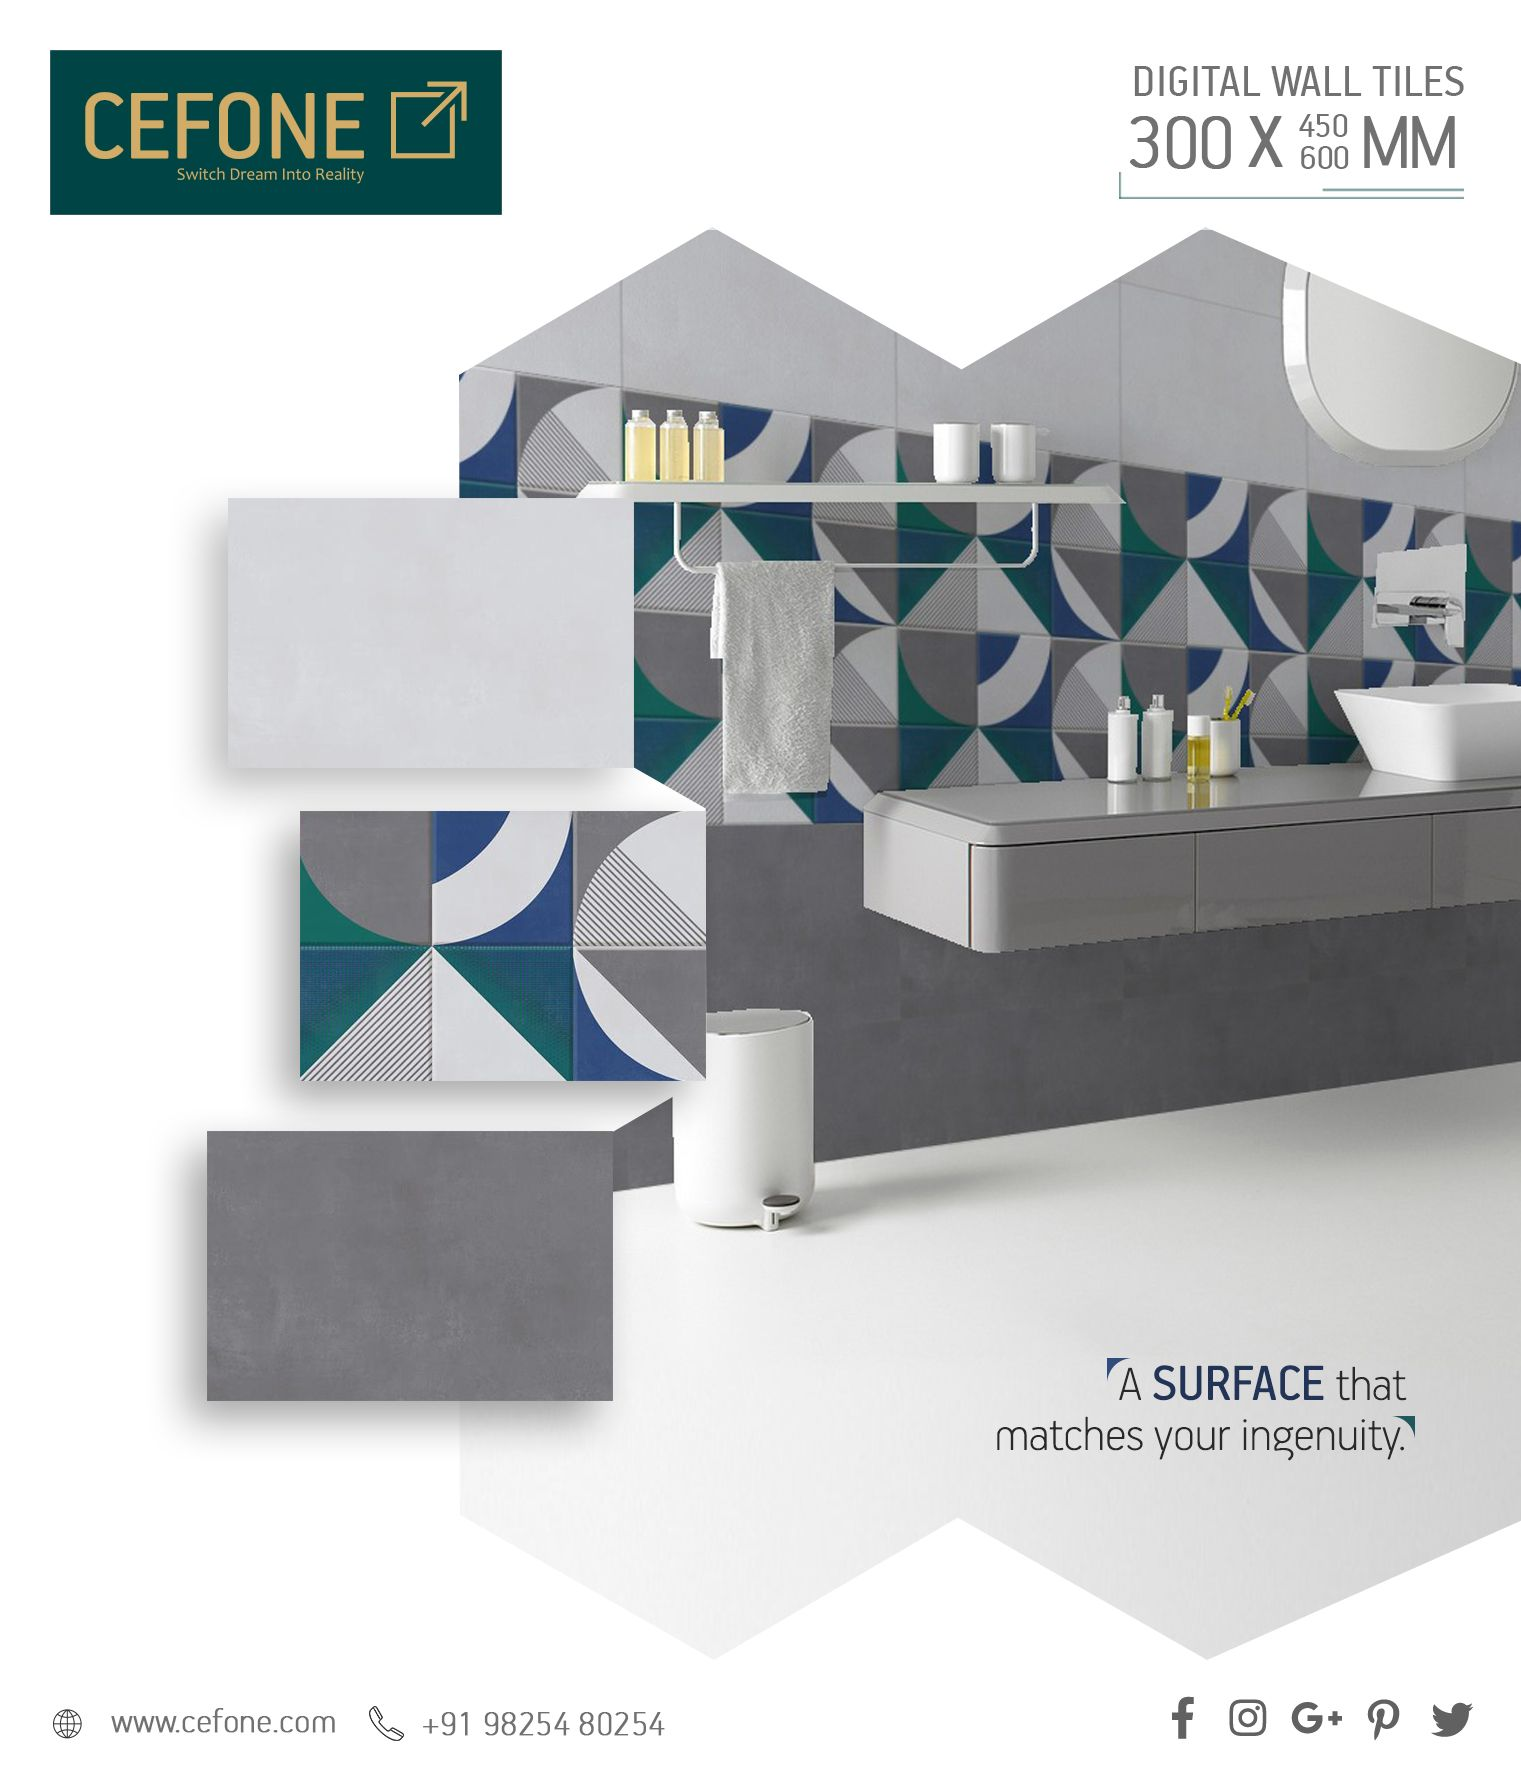 Pin By Cefone Ceramic On Tile Design S Wall Tiles Wall Tiles Design Creative Advertising Design